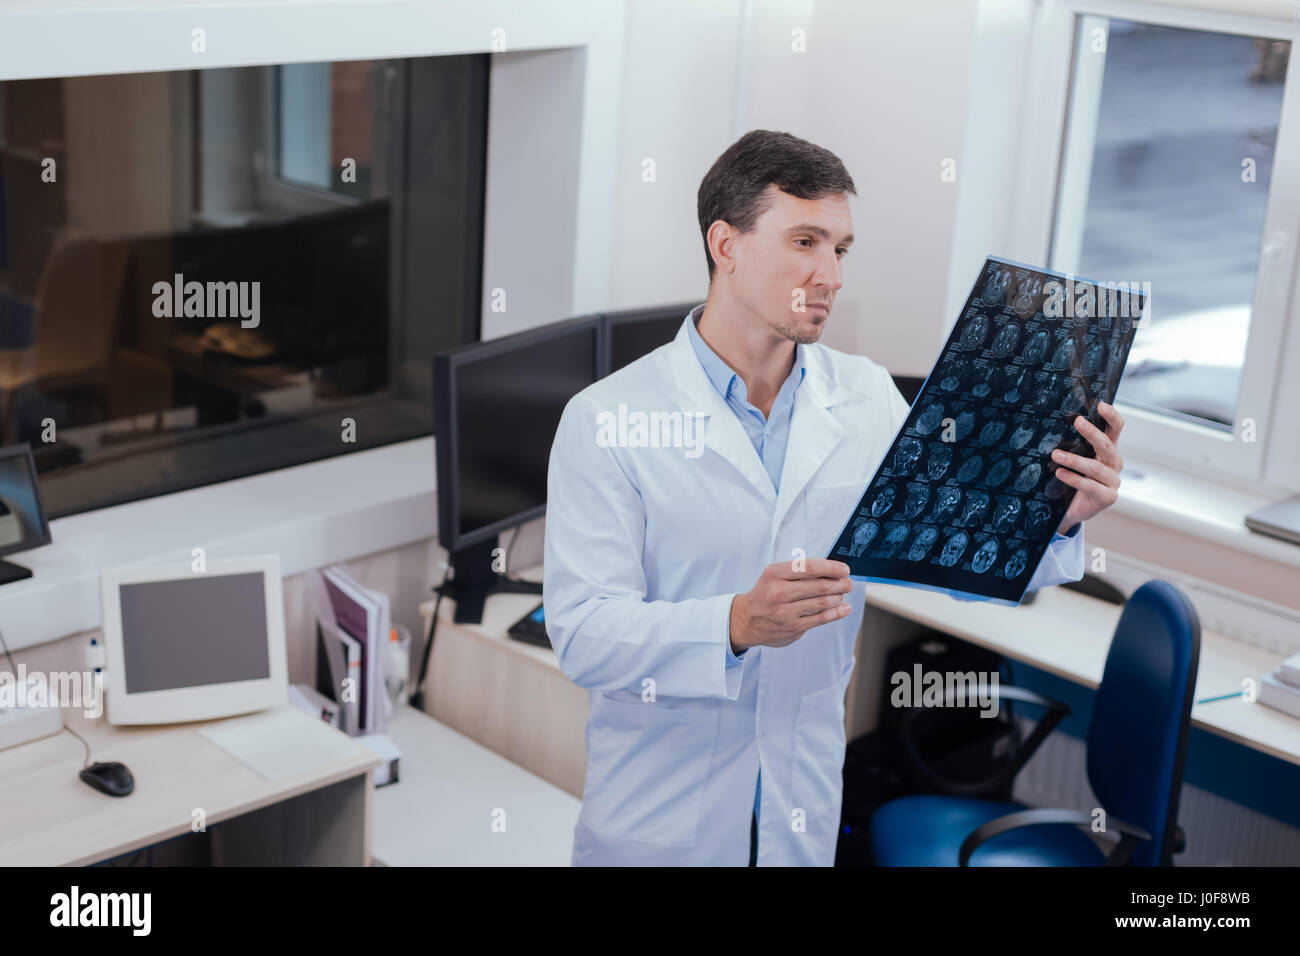 Serious male radiologist thinking about diagnosis - Stock Image